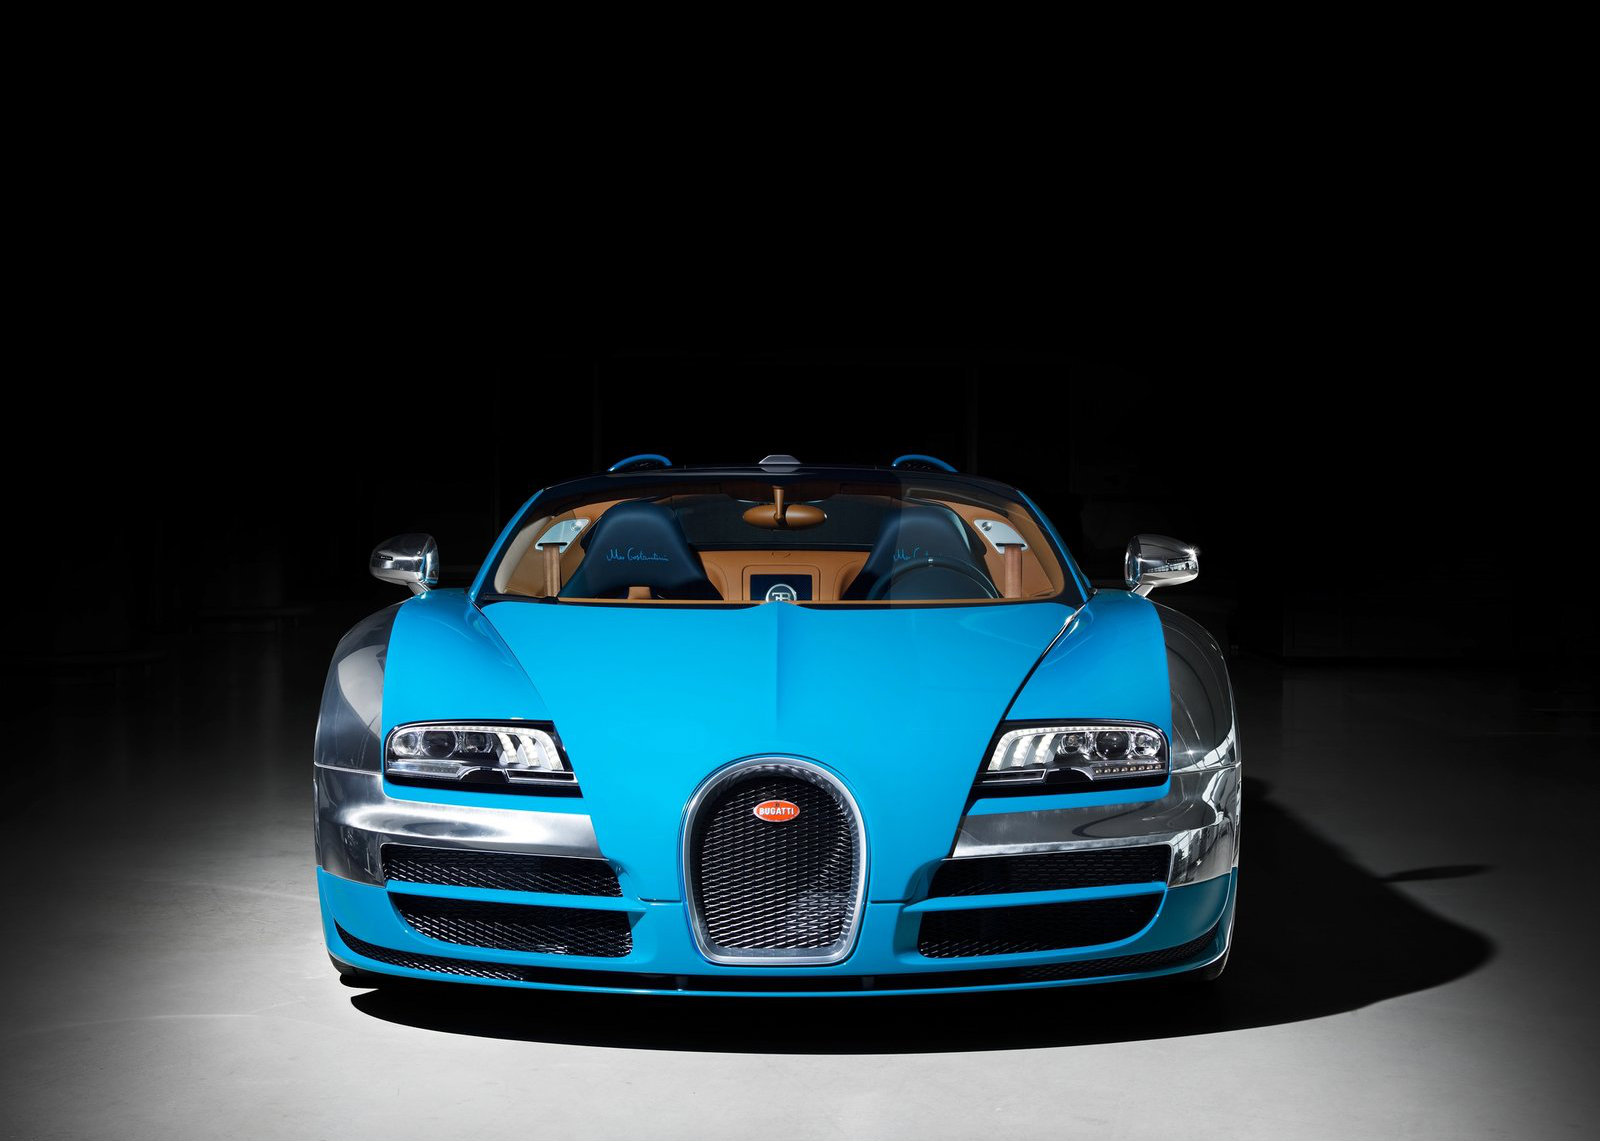 new bugatti veyron to crack 286 mph only 15 current gen veyrons still unsold. Black Bedroom Furniture Sets. Home Design Ideas